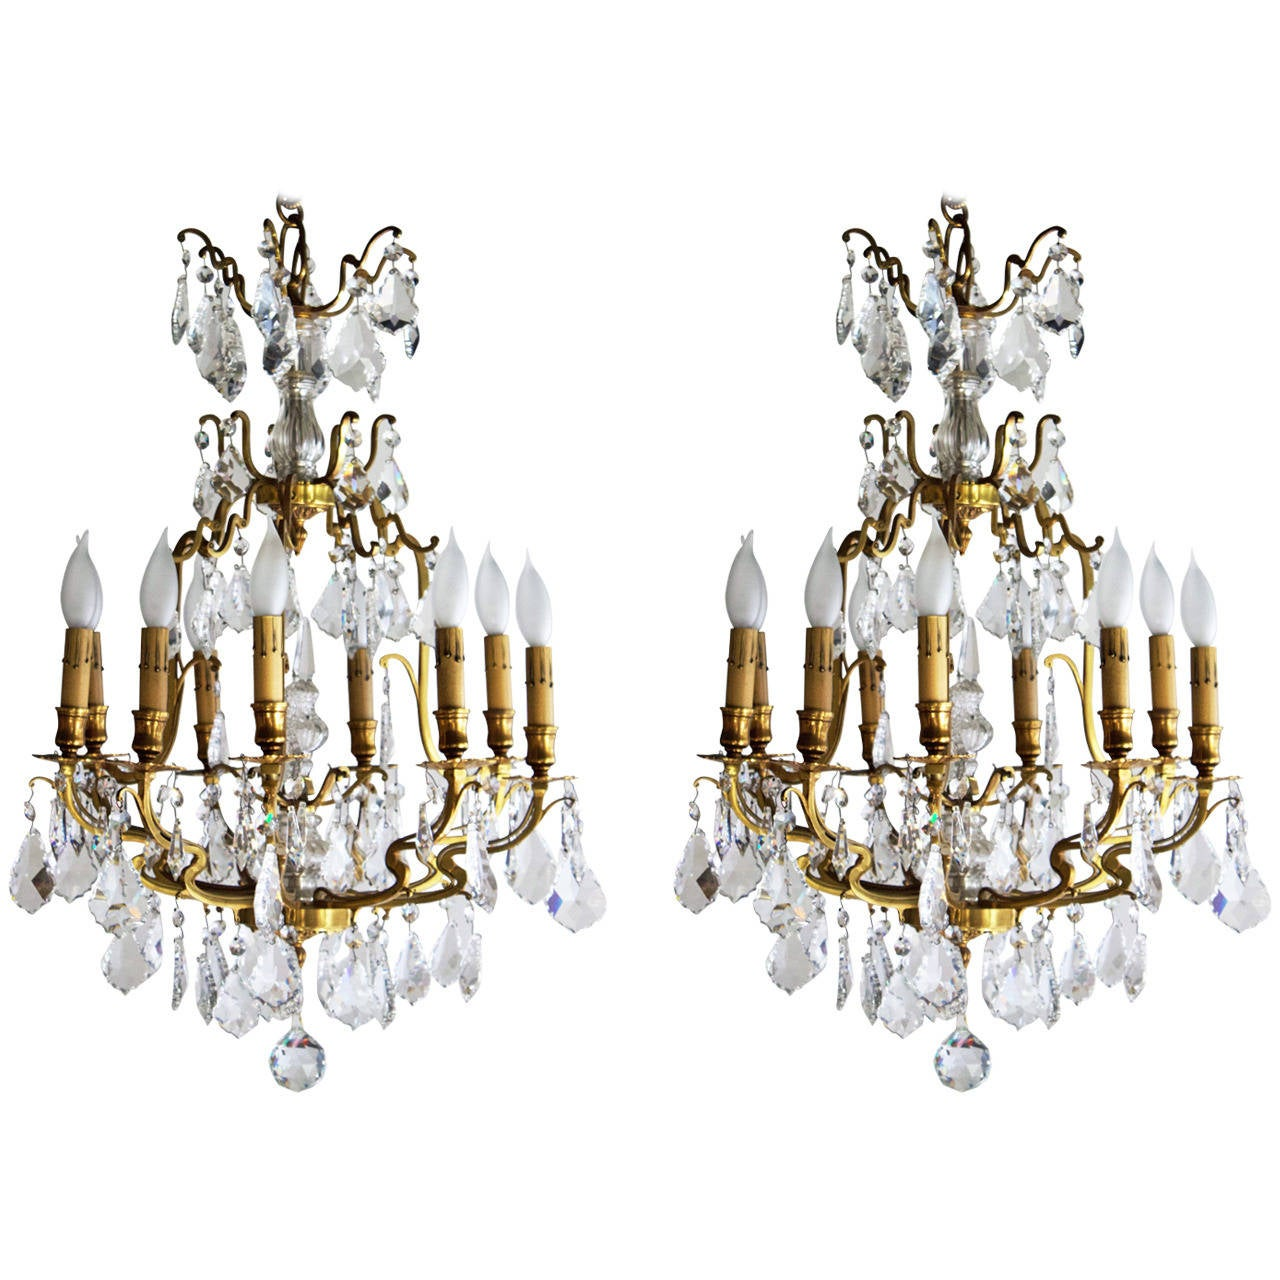 Pair of Gilt Bronze and Crystal Louis XV Style Chandeliers